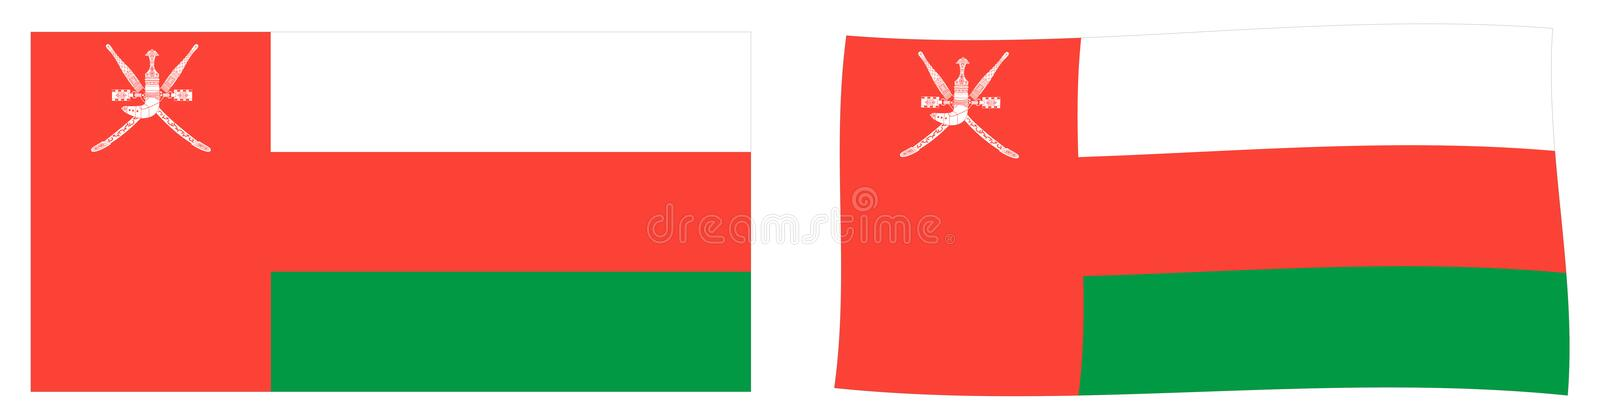 Sultanate of Oman flag. Simple and slightly waving version. Sultanate of Oman flag. Simple and slightly waving version royalty free illustration